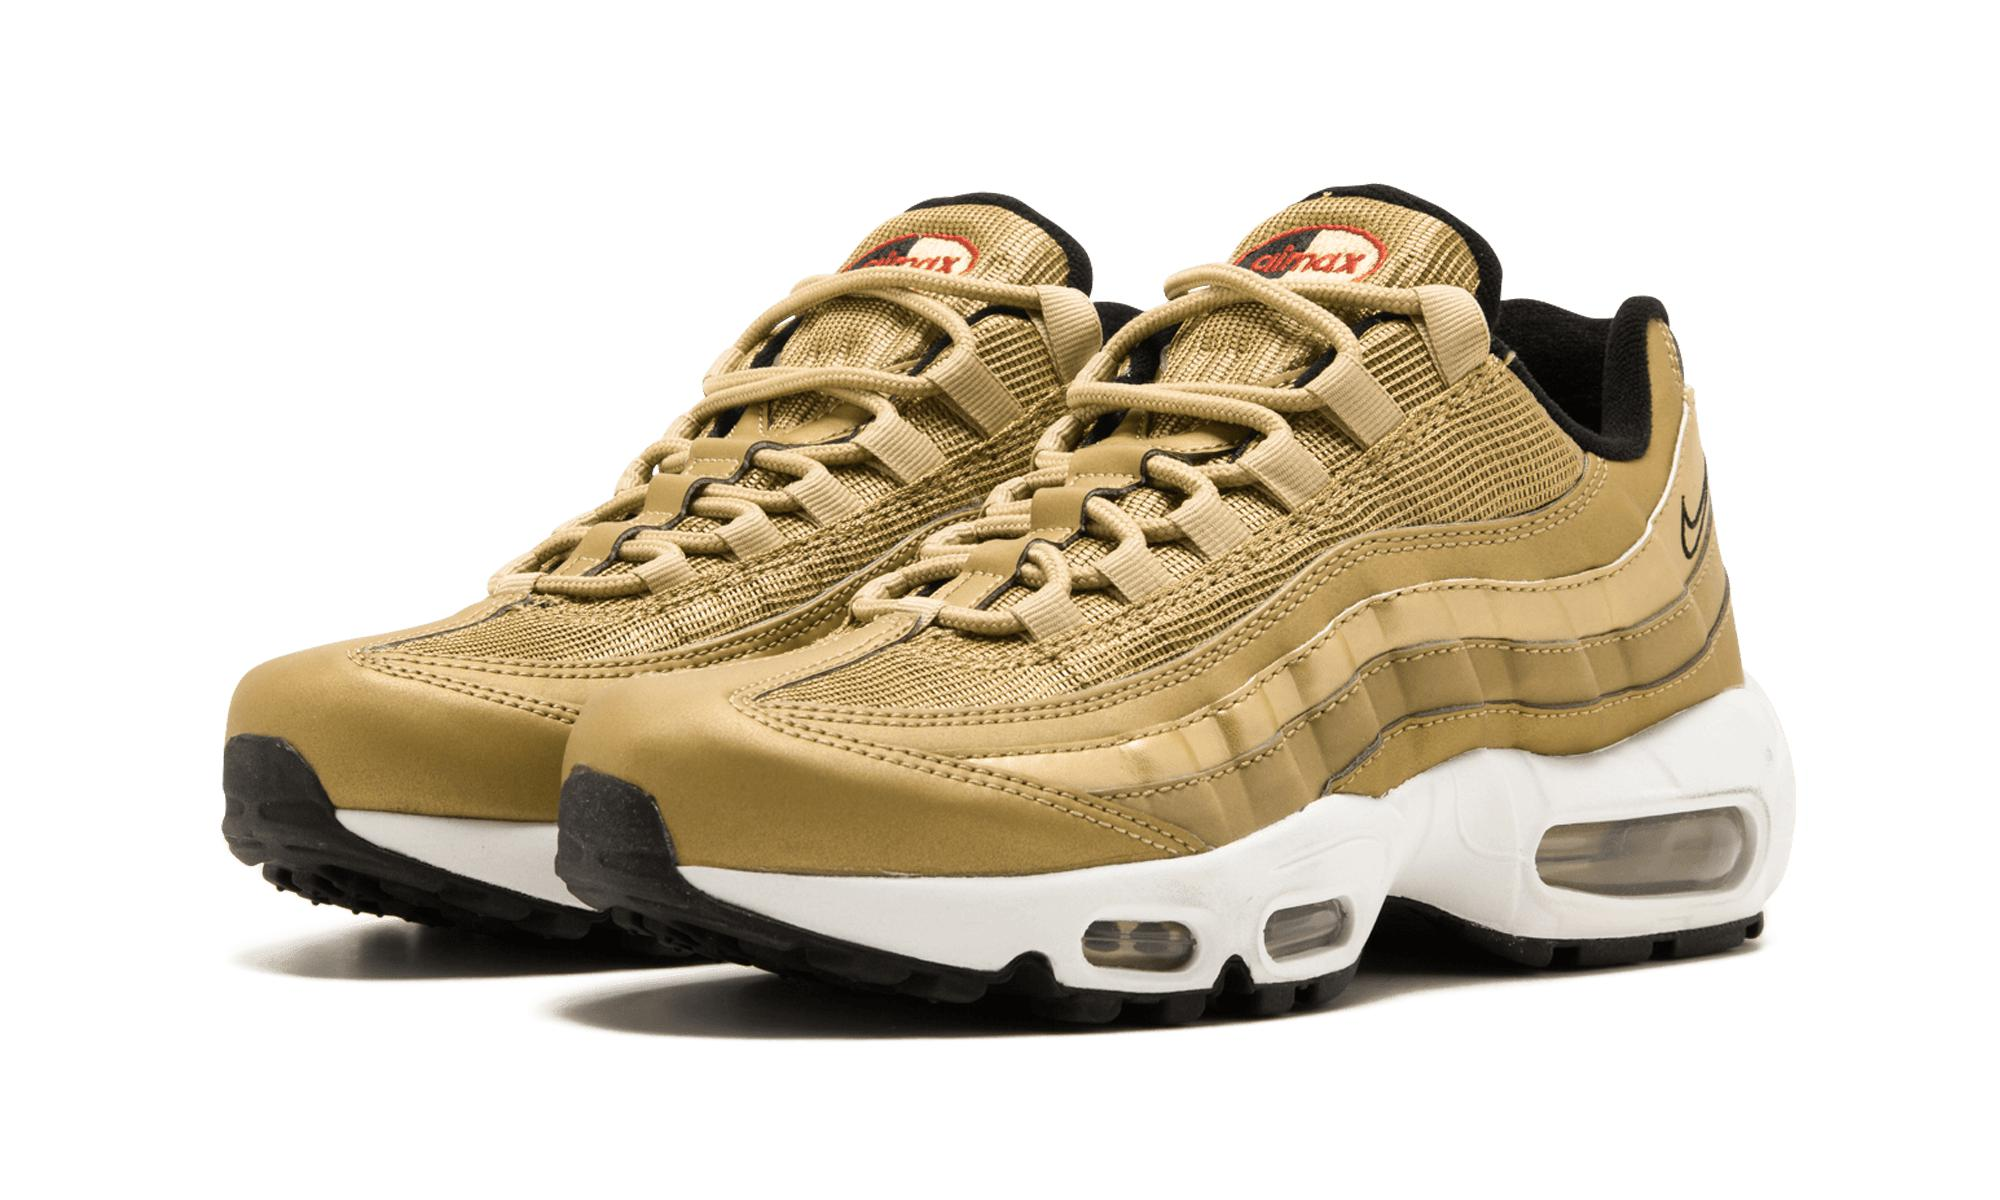 Lyst Lyst Lyst Nike Air Max 95 Premium Qs in Metallic for Uomo aa5087